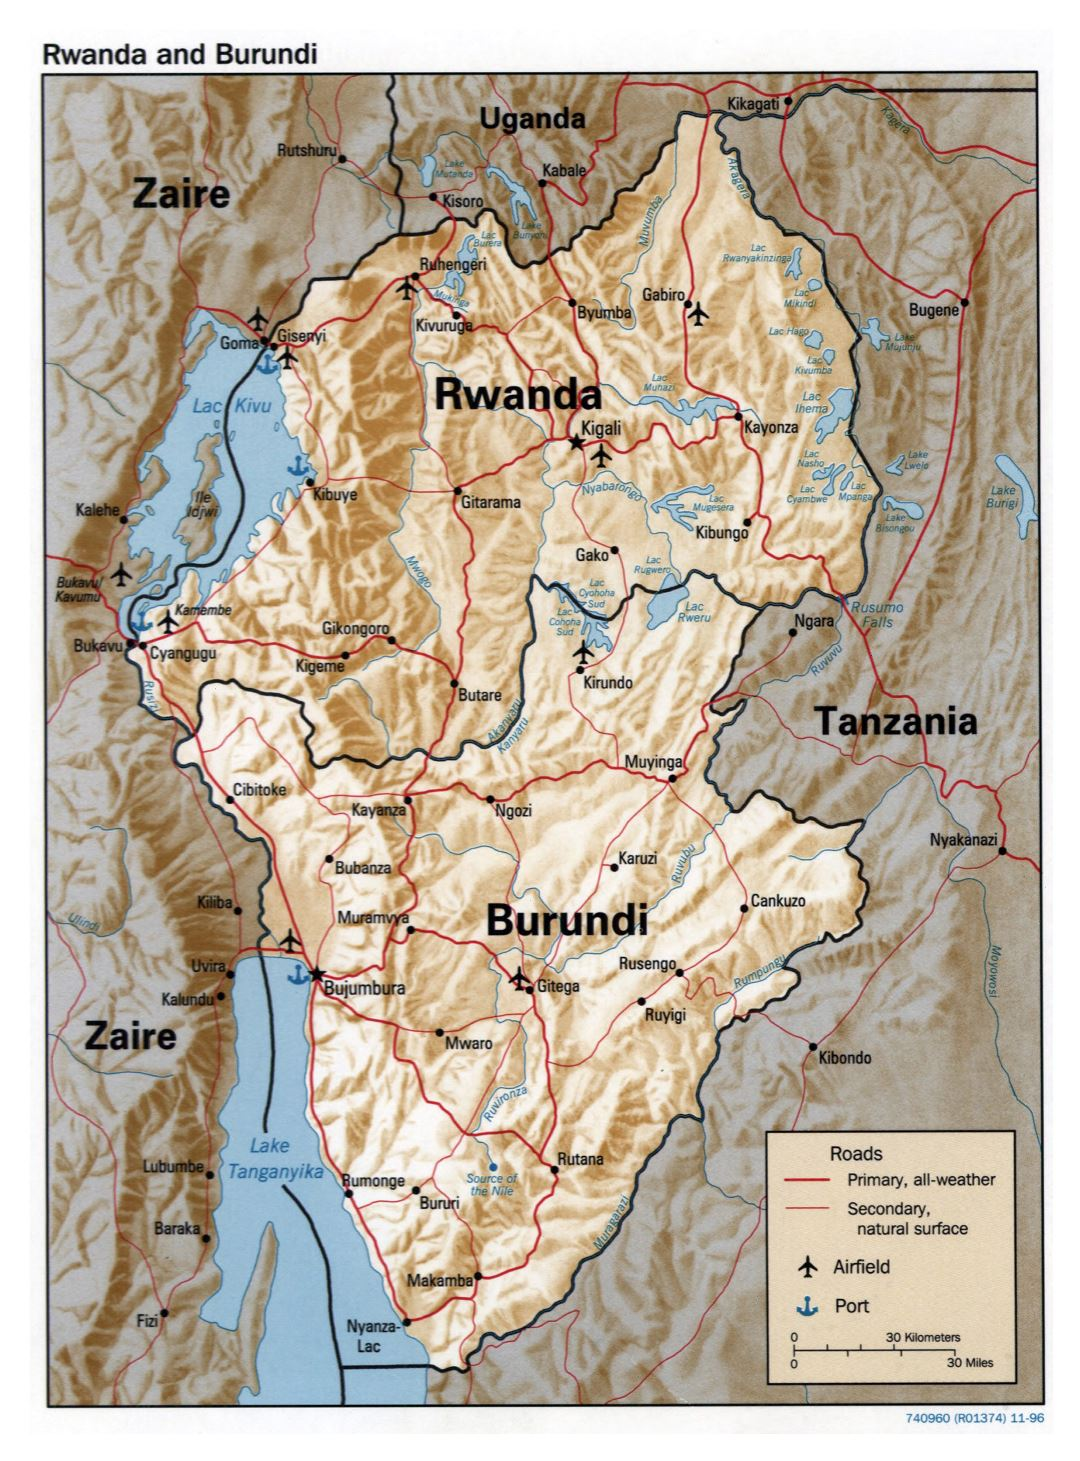 Large political map of Rwanda and Burundi with relief, roads, major cities, ports and airports - 1996